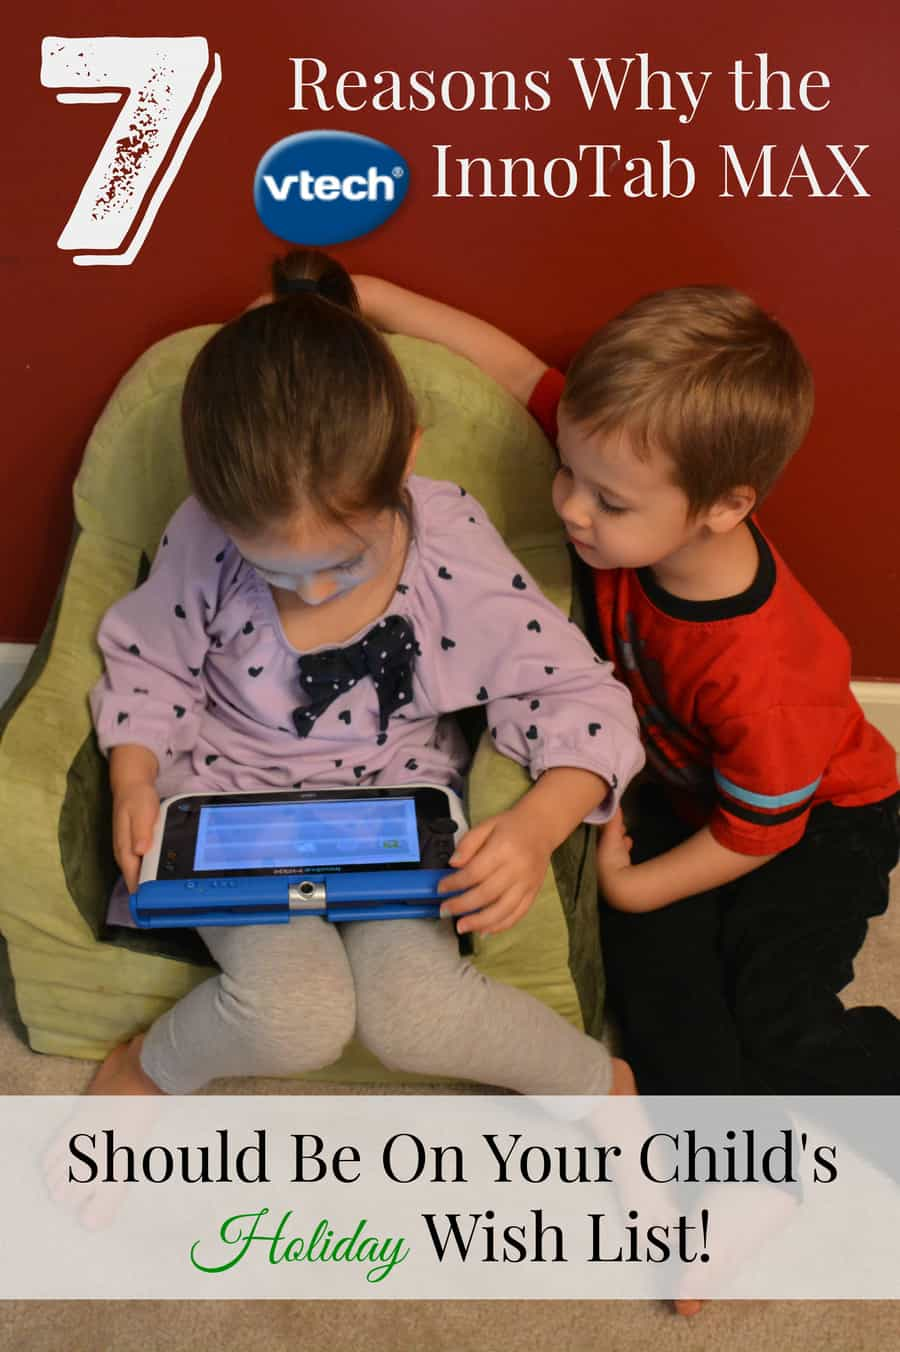 7 Reasons Why the Vtech InnoTab MAX Should Be On Your Child's Holiday Wish List